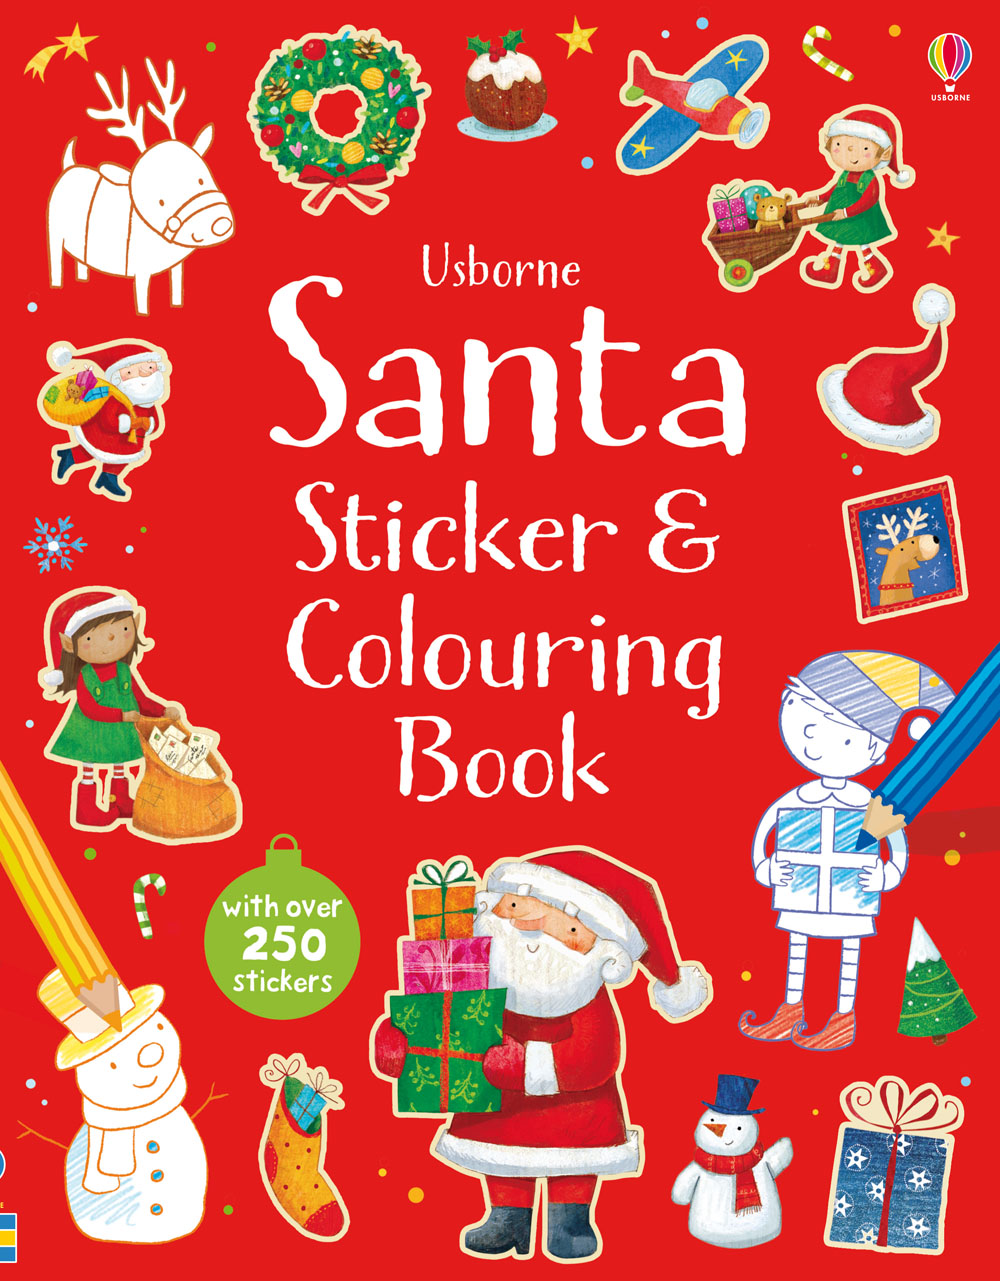 9781409582359?width\u003d960\u0026mode\u003dmin together with the usborne book of drawing doodling and coloring for christmas on usborne christmas coloring book additionally usborne books more christmas pocket doodling and coloring book on usborne christmas coloring book furthermore christmas colouring books from usborne on usborne christmas coloring book along with 15 adult coloring book on usborne christmas coloring book